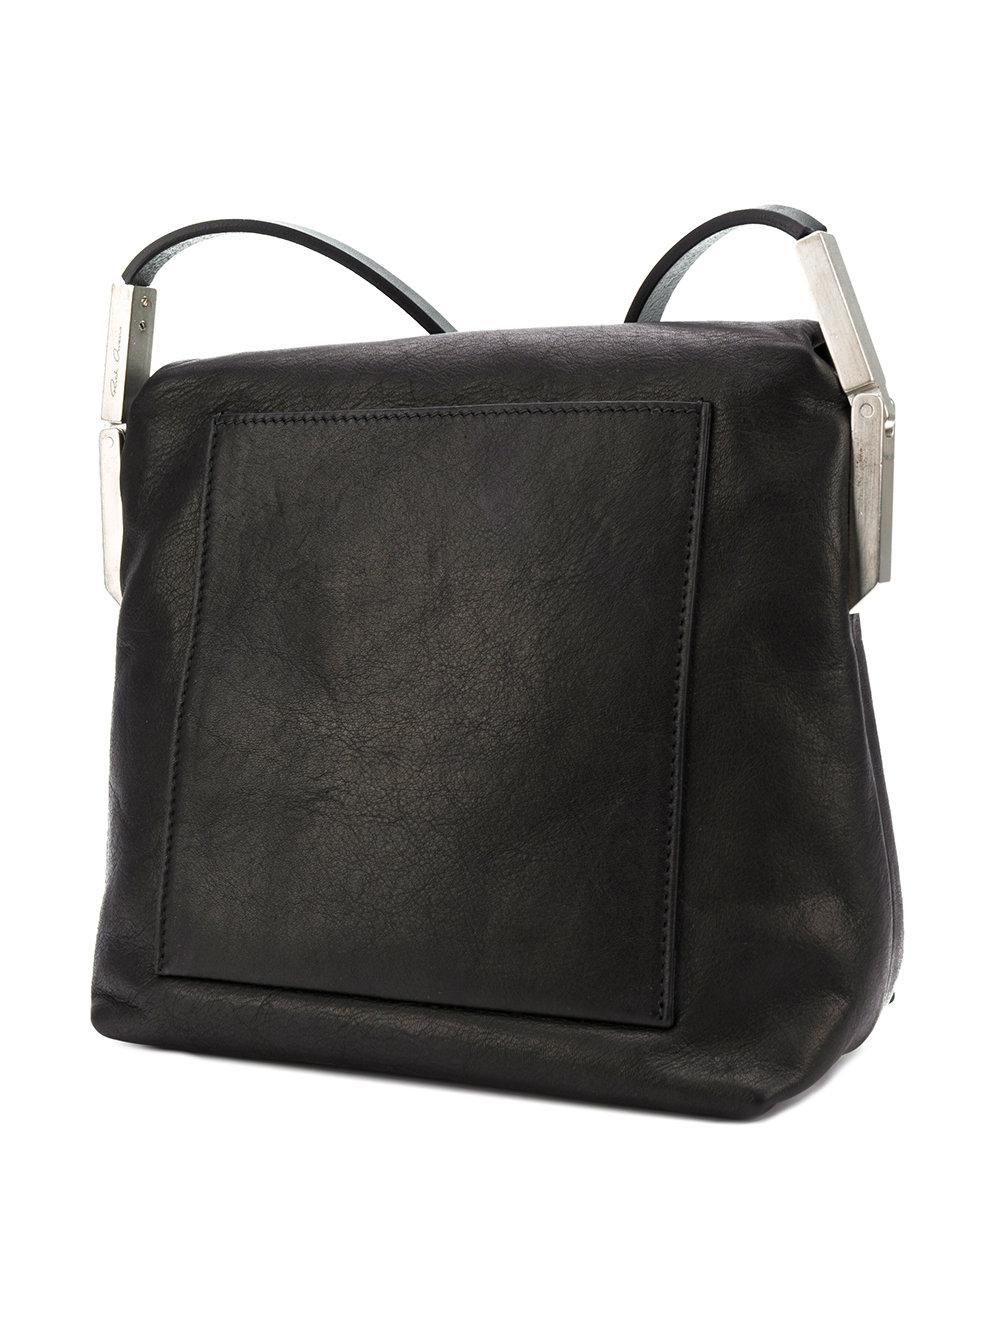 foldover top shoulder bag - Black Rick Owens Discount Cheapest Price Buy Cheap Best Store To Get Outlet Where Can You Find Cheap Sale Find Great Cheap Sale Reliable huIoN6jm